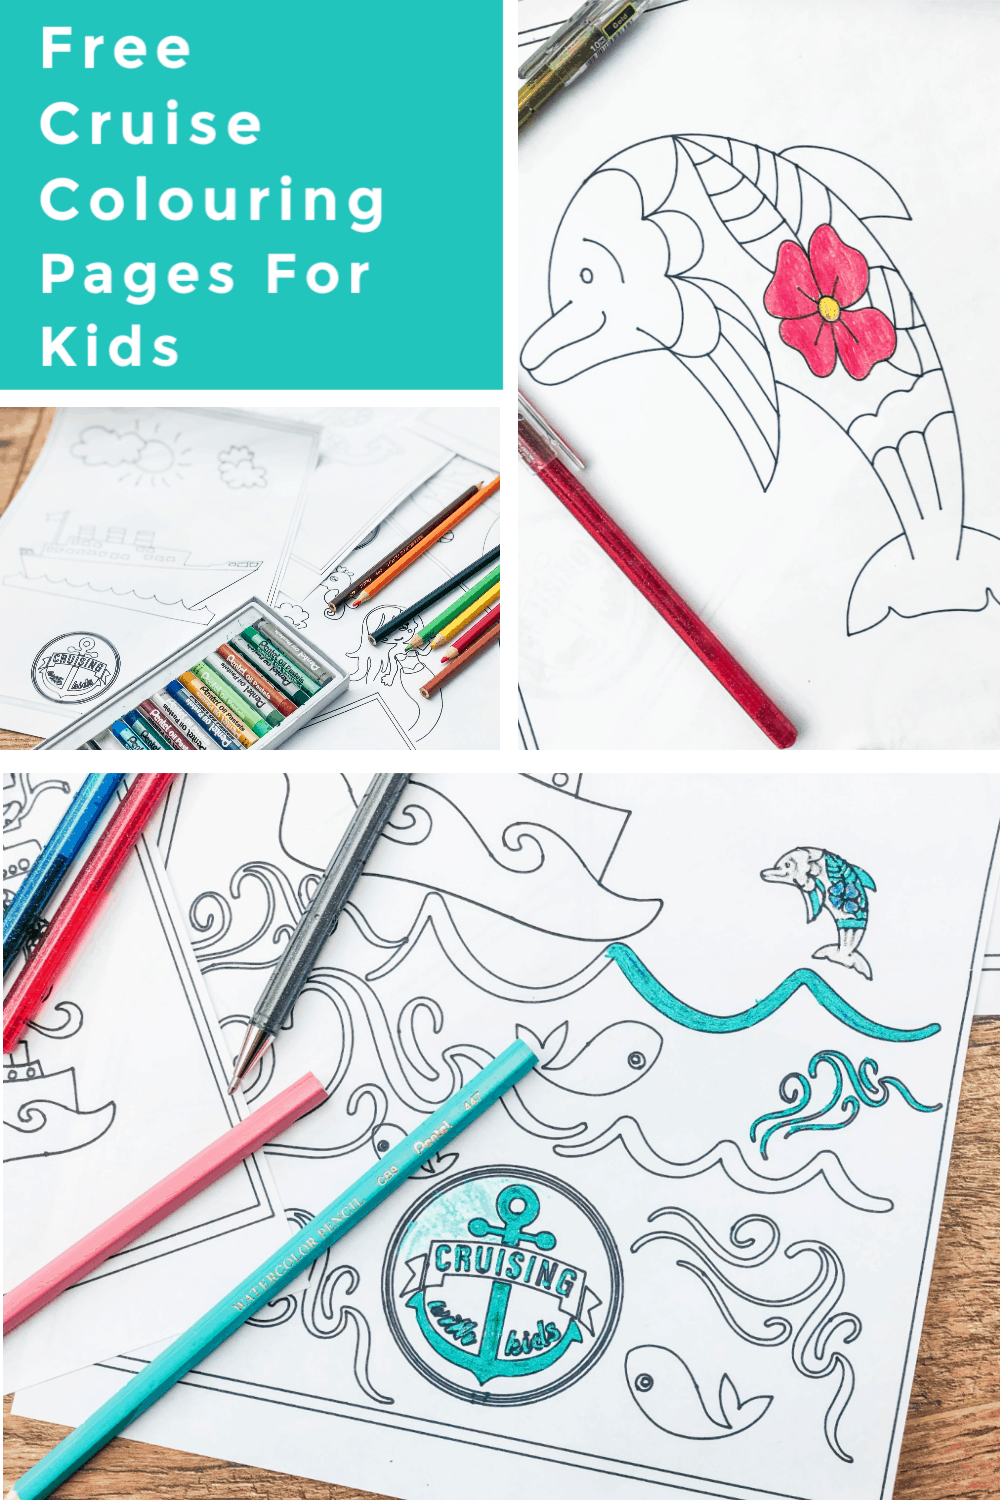 Free downloadable colouring pages for kids who cruise